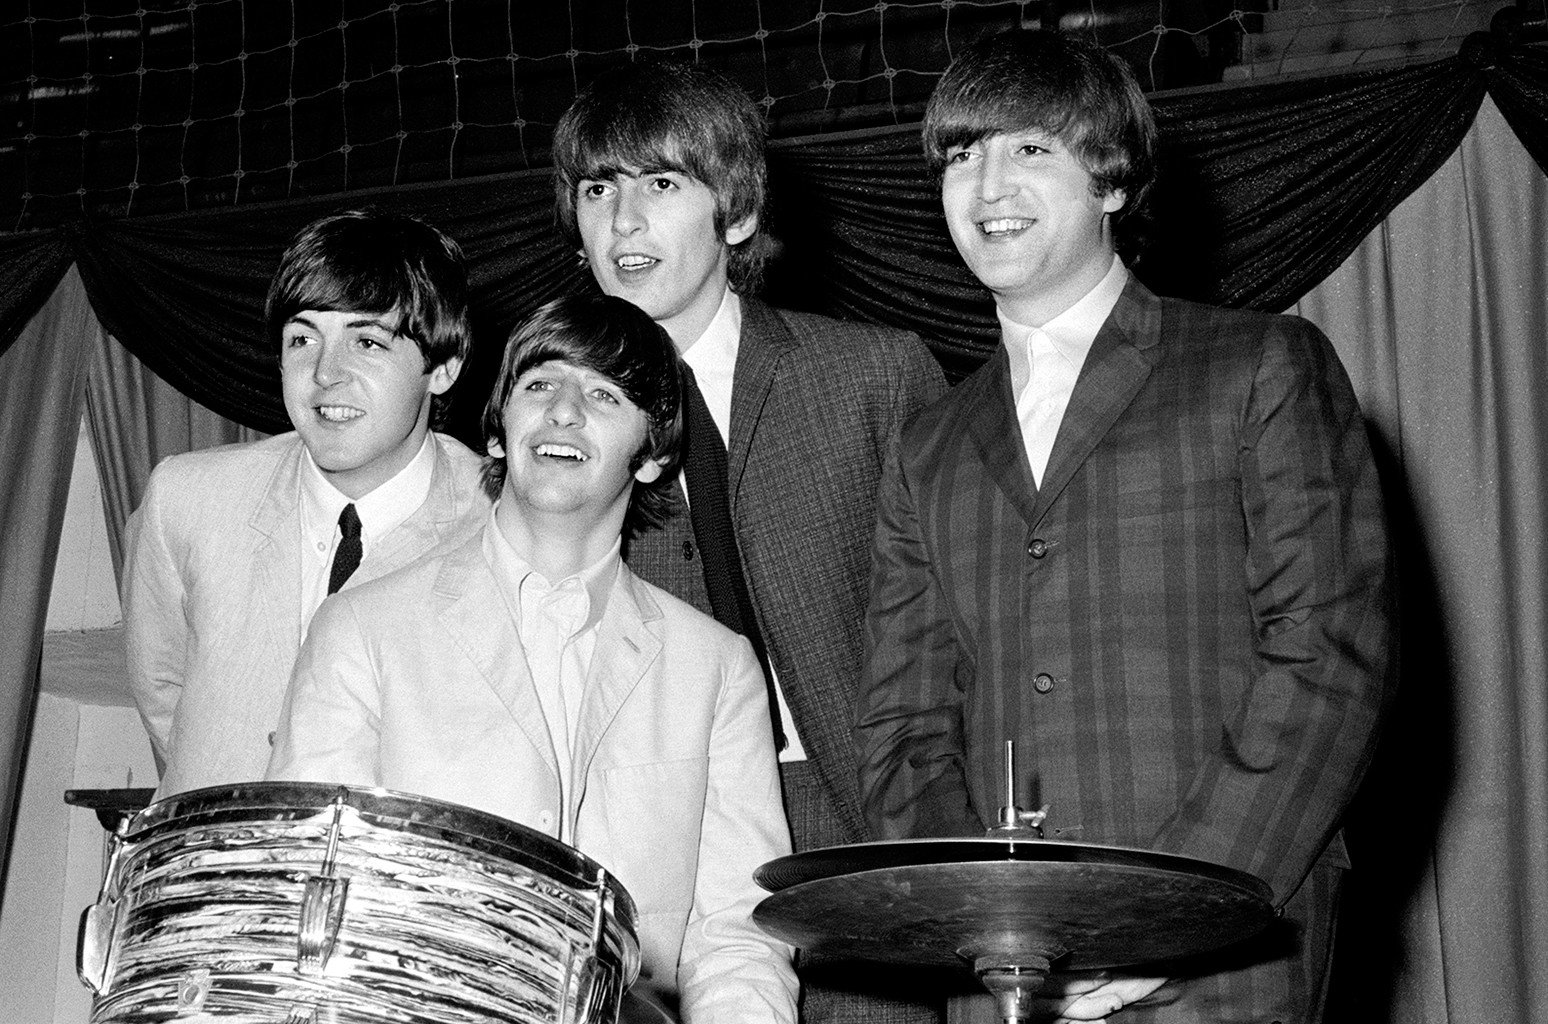 The Beatles photographed at a press conference at Maple Leaf Center in Toronto, Canada on Sept. 7, 1964.